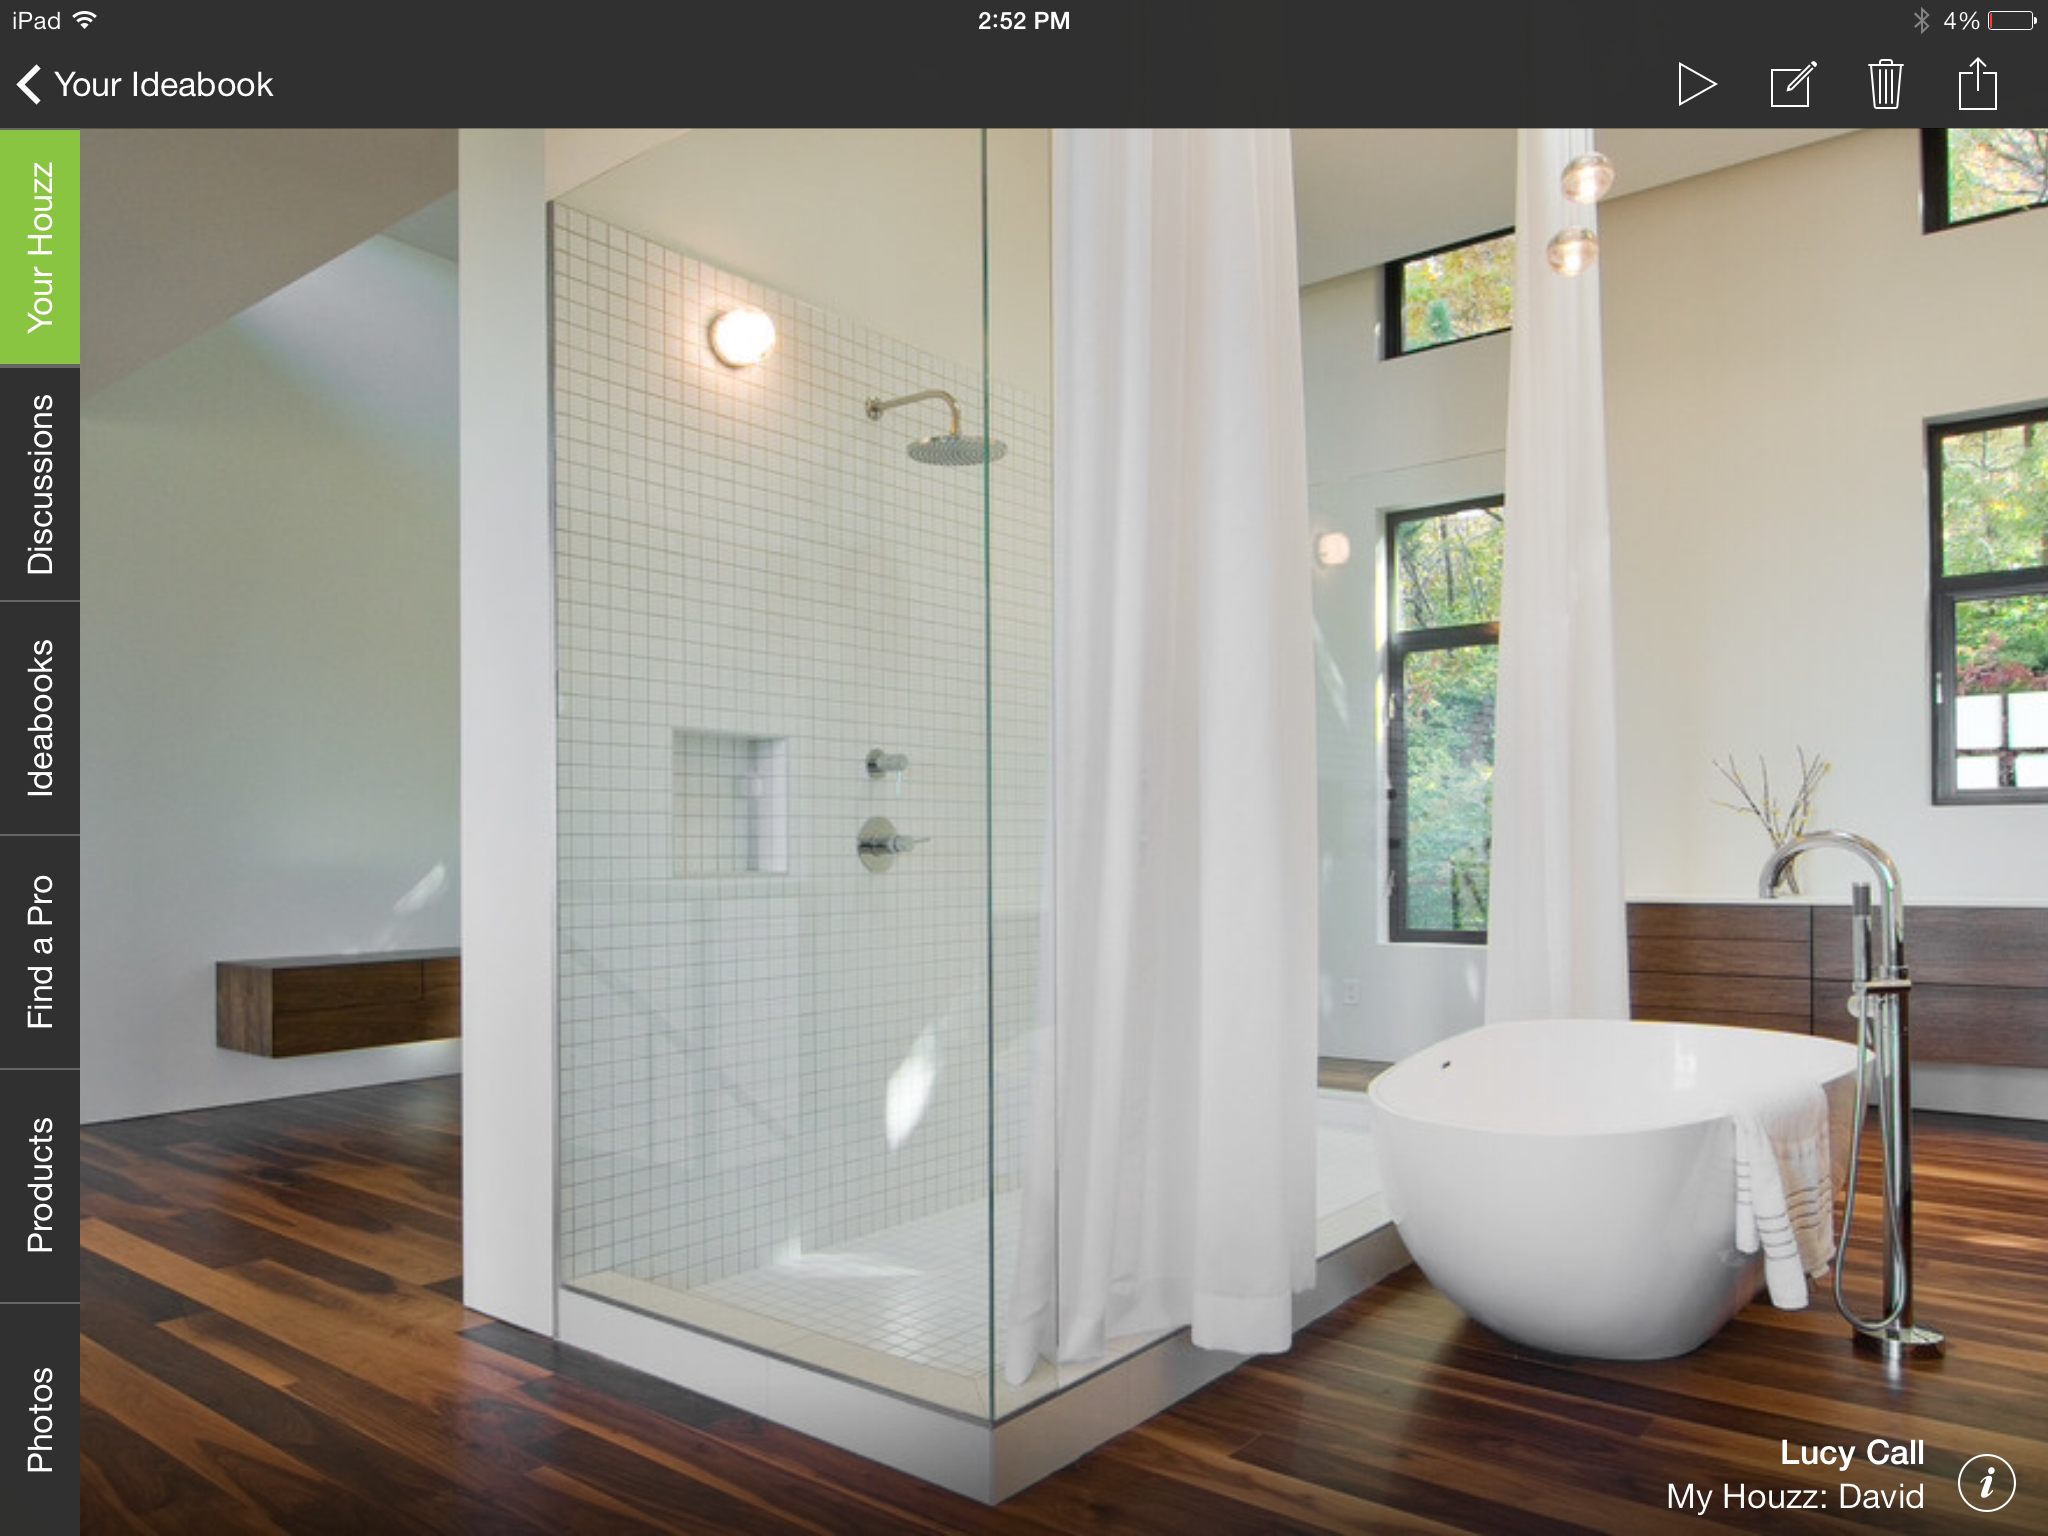 Dream bathrooms trends fewer tubs more walls around toilets remodeling bath tubs shower Bathroom design ideas houzz